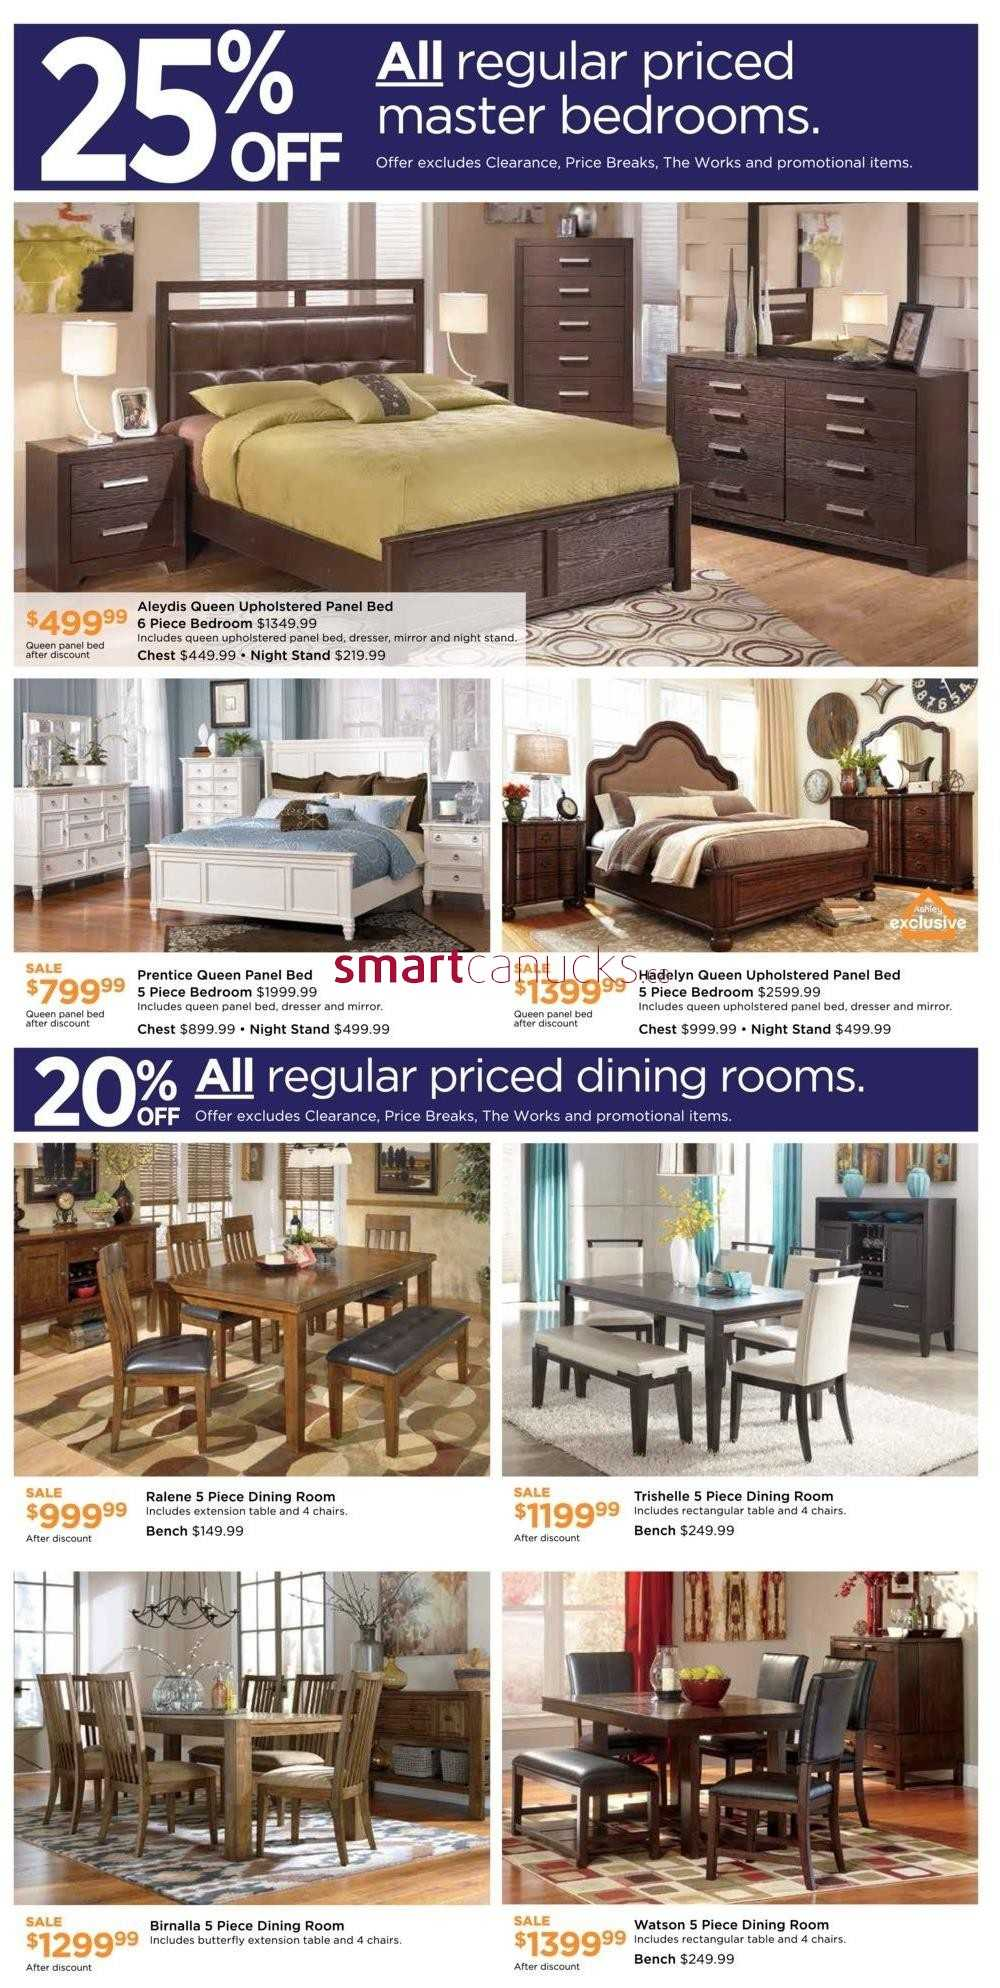 Ashley furniture homestore on weekend sale flyer for Ashley furniture homestore canada